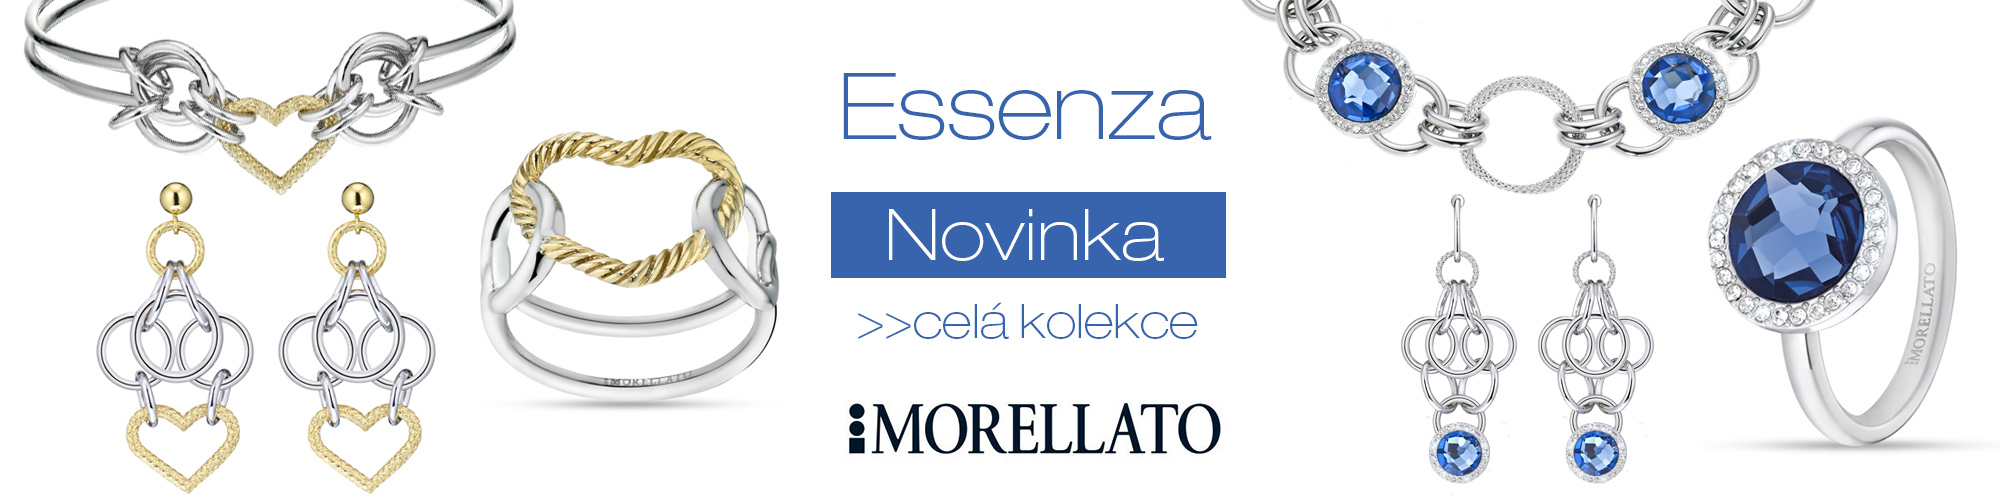 Essenza Morellato